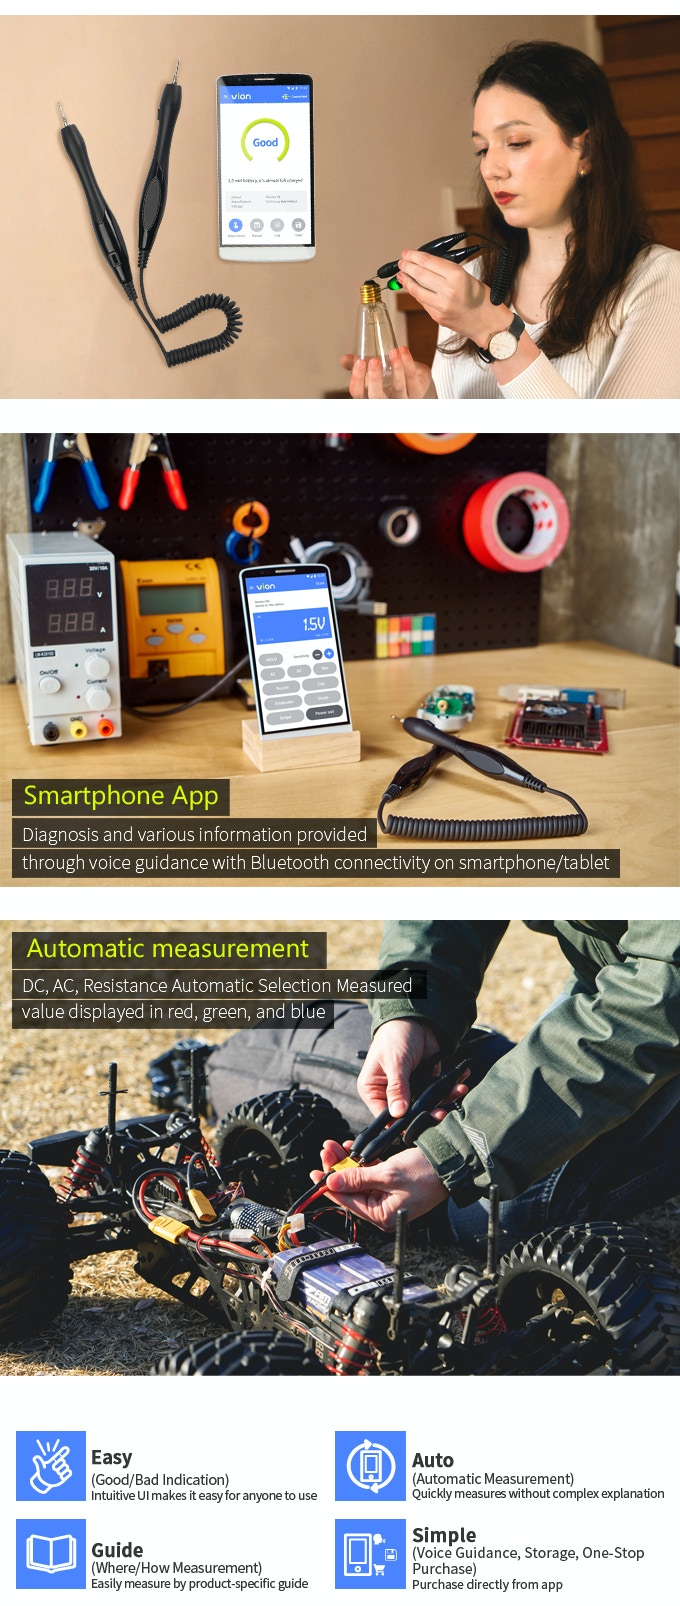 Vion Auto Detection L Bluetooth Smartphone App Multimeter By Meter Dpm To Measure Ac Voltage Simply Smarter Circuitry Blog Measures And Resistance Has A Pair Of Probes Without Body Allows You See The Breakdown Electricity Powered Products On Your